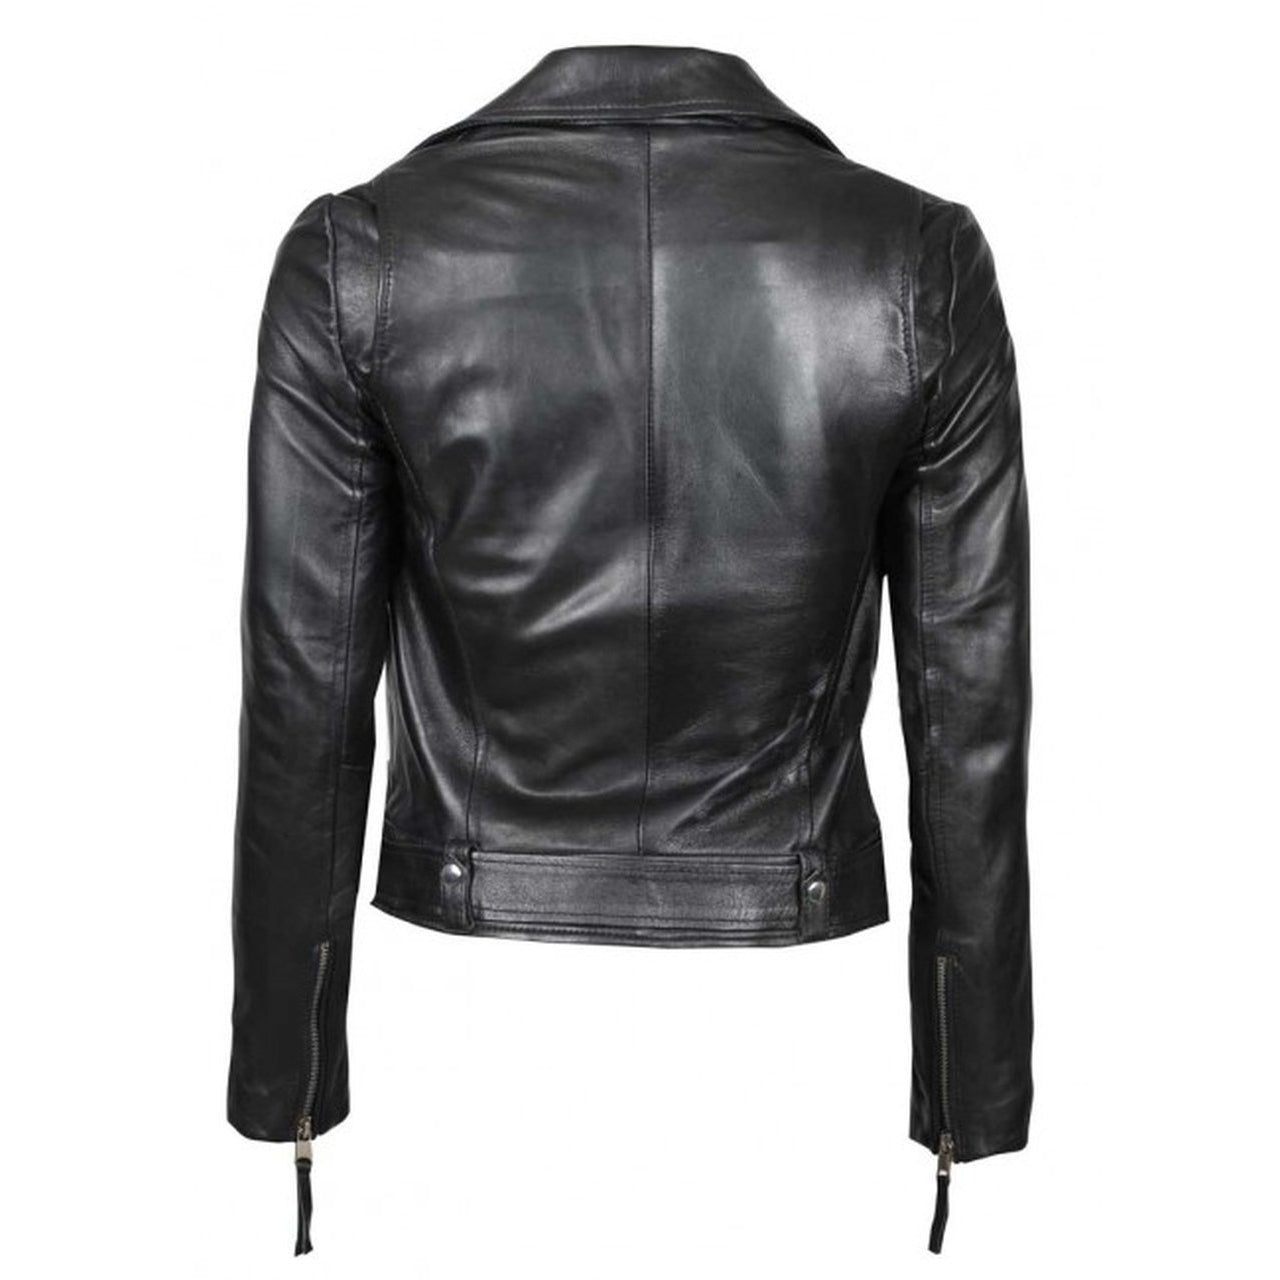 Black Asymmetrical Leather Jacket For Women - Leather Jacket